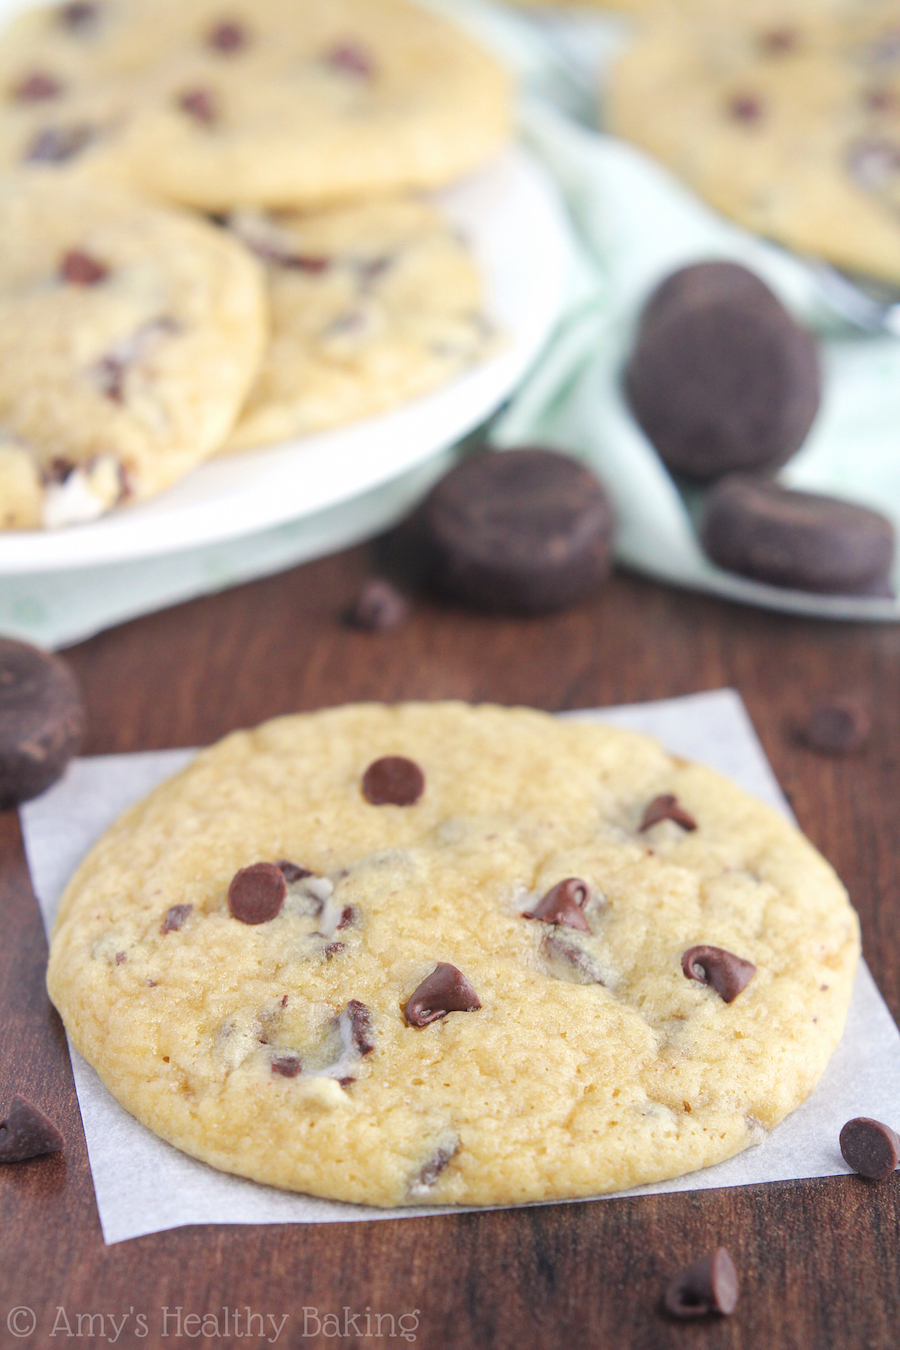 Mint Chocolate Chip Cookies -- buttery, chewy, minty & laughably easy to make! These were called the BEST I've baked. The whole batch barely lasted 5 minutes!